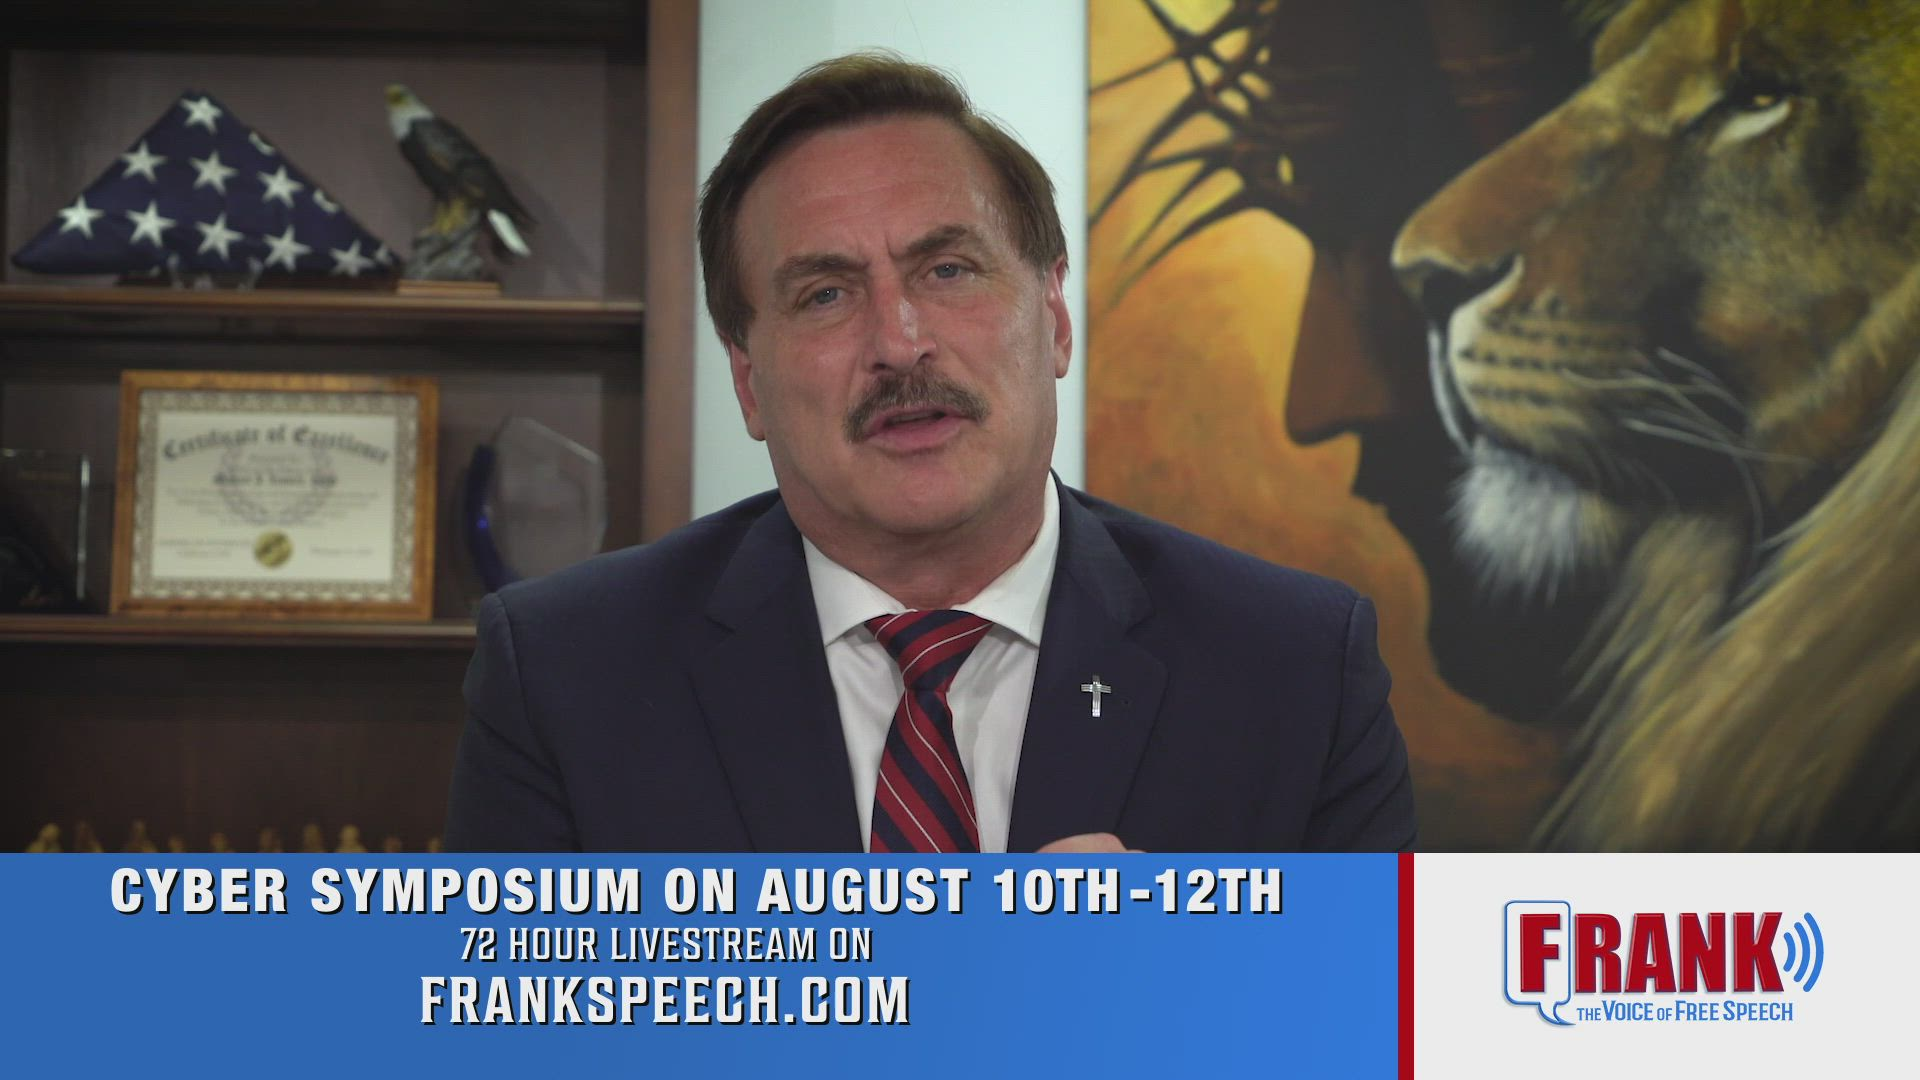 Tickets for Mike lindell cyber symposium - Book now